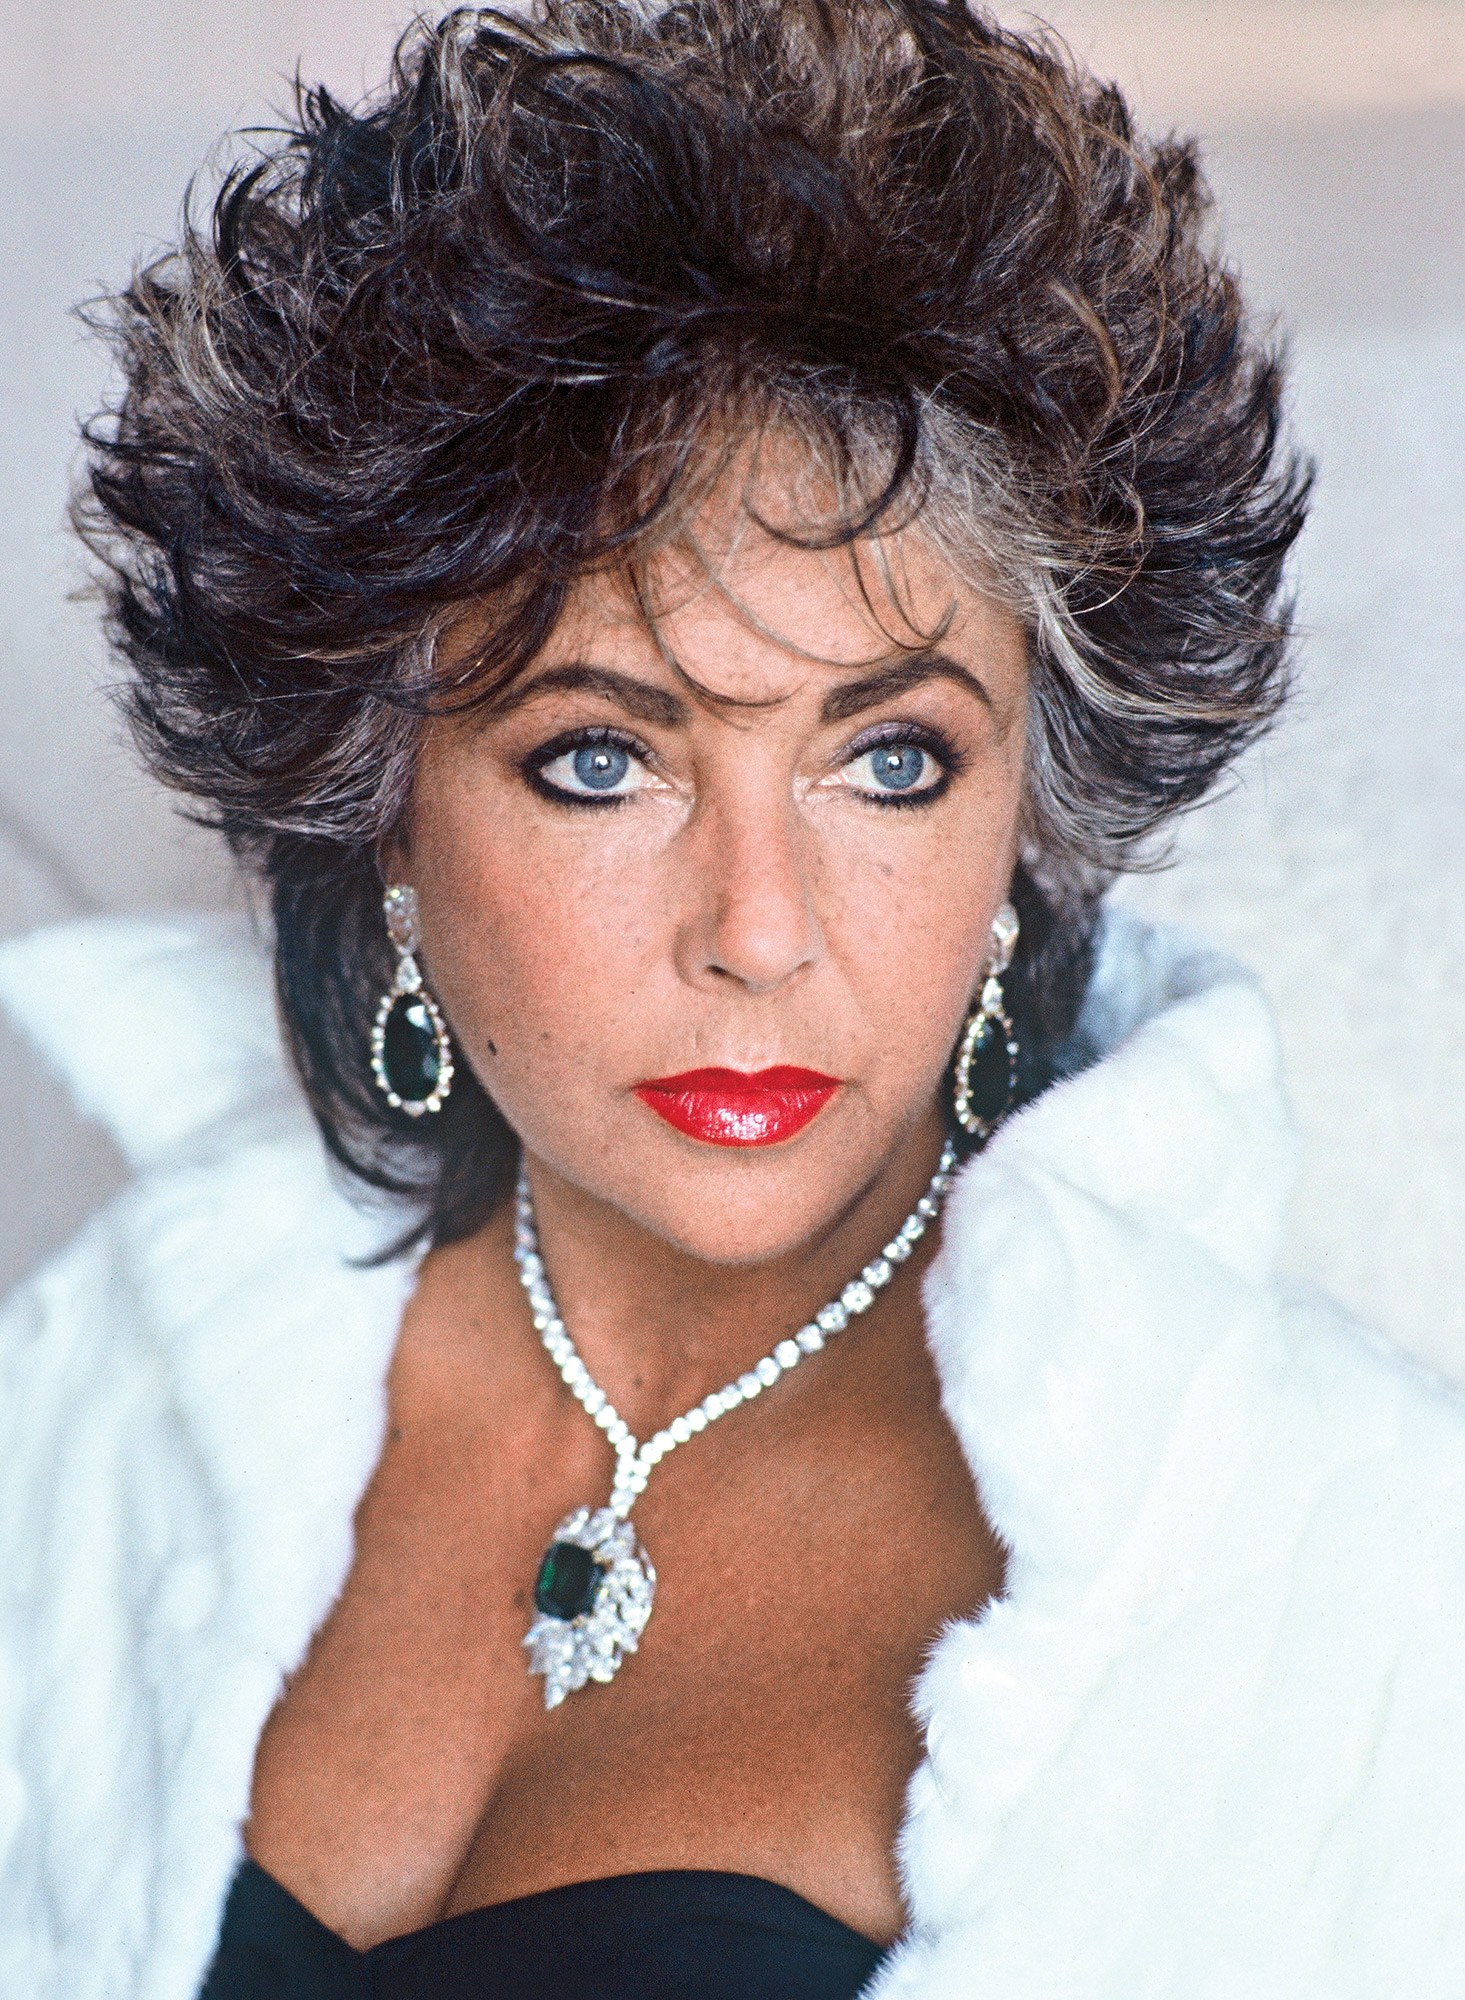 Elizabeth Taylor U0026 39 S Personal Treasures Set For Auction